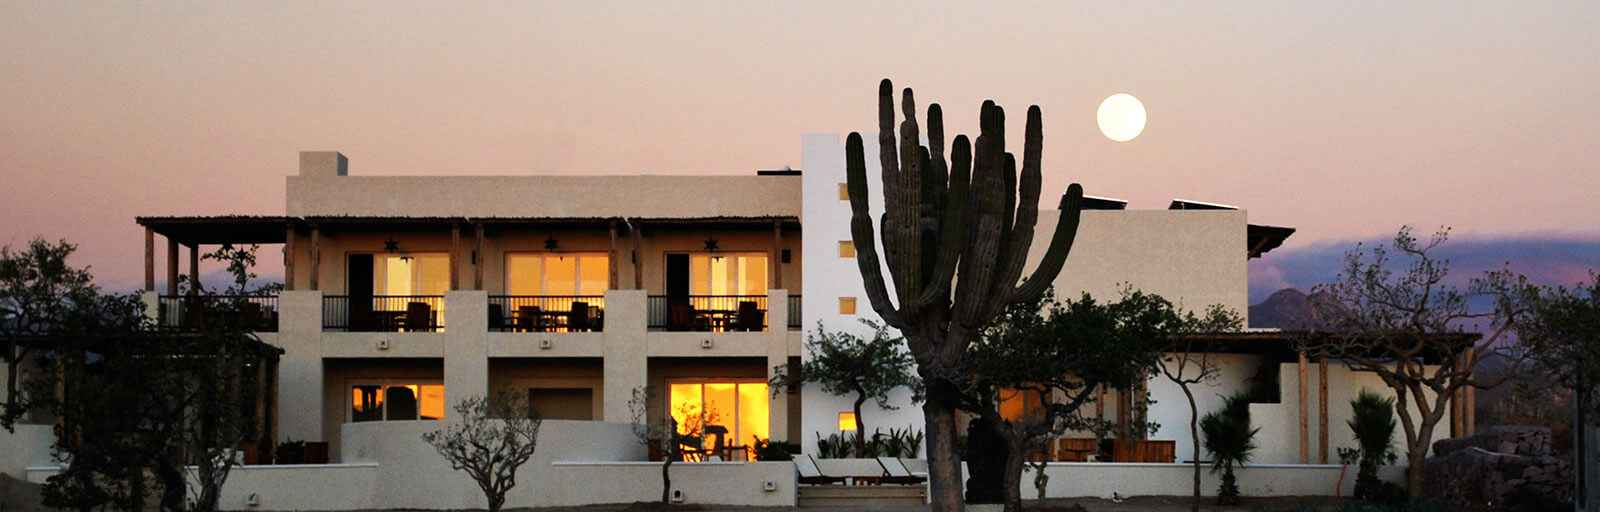 Yoga Retreat in Mexico: Moonrise over Retreat Center